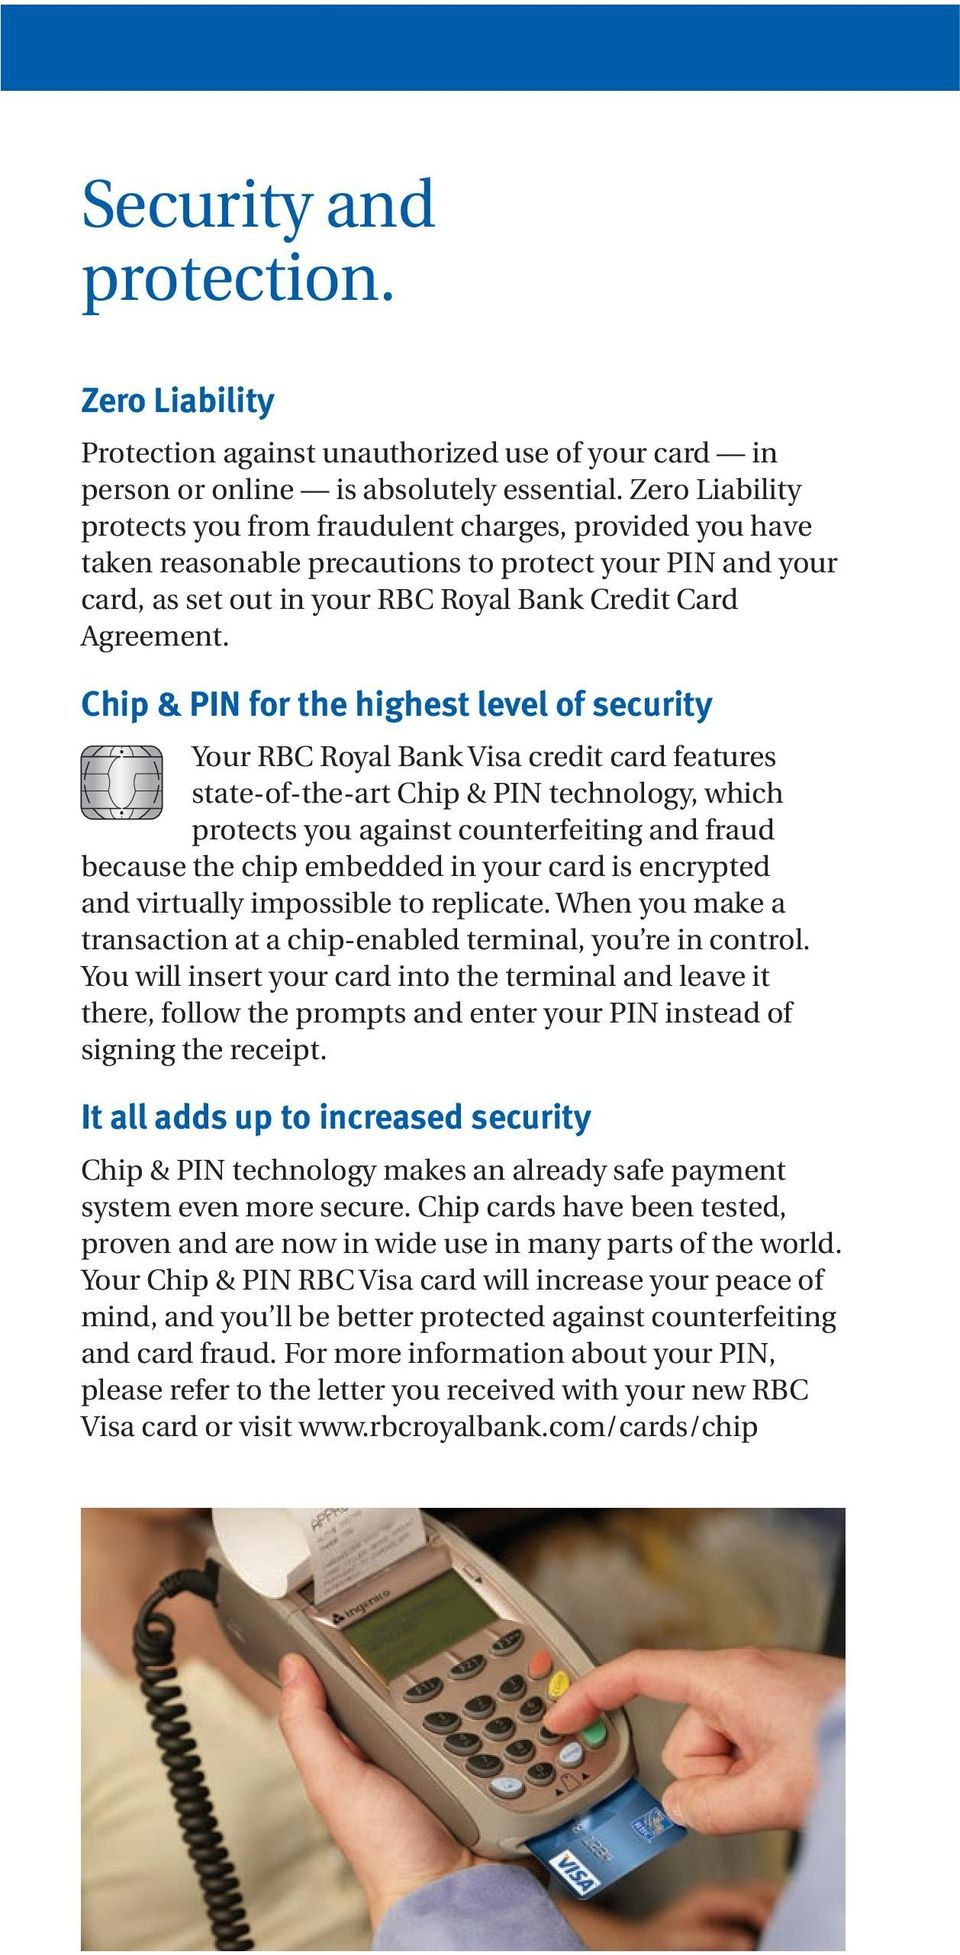 Chip & PIN for the highest level of security Your RBC Royal Bak Visa credit card features state-of-the-art Chip & PIN techology, which protects you agaist couterfeitig ad fraud because the chip